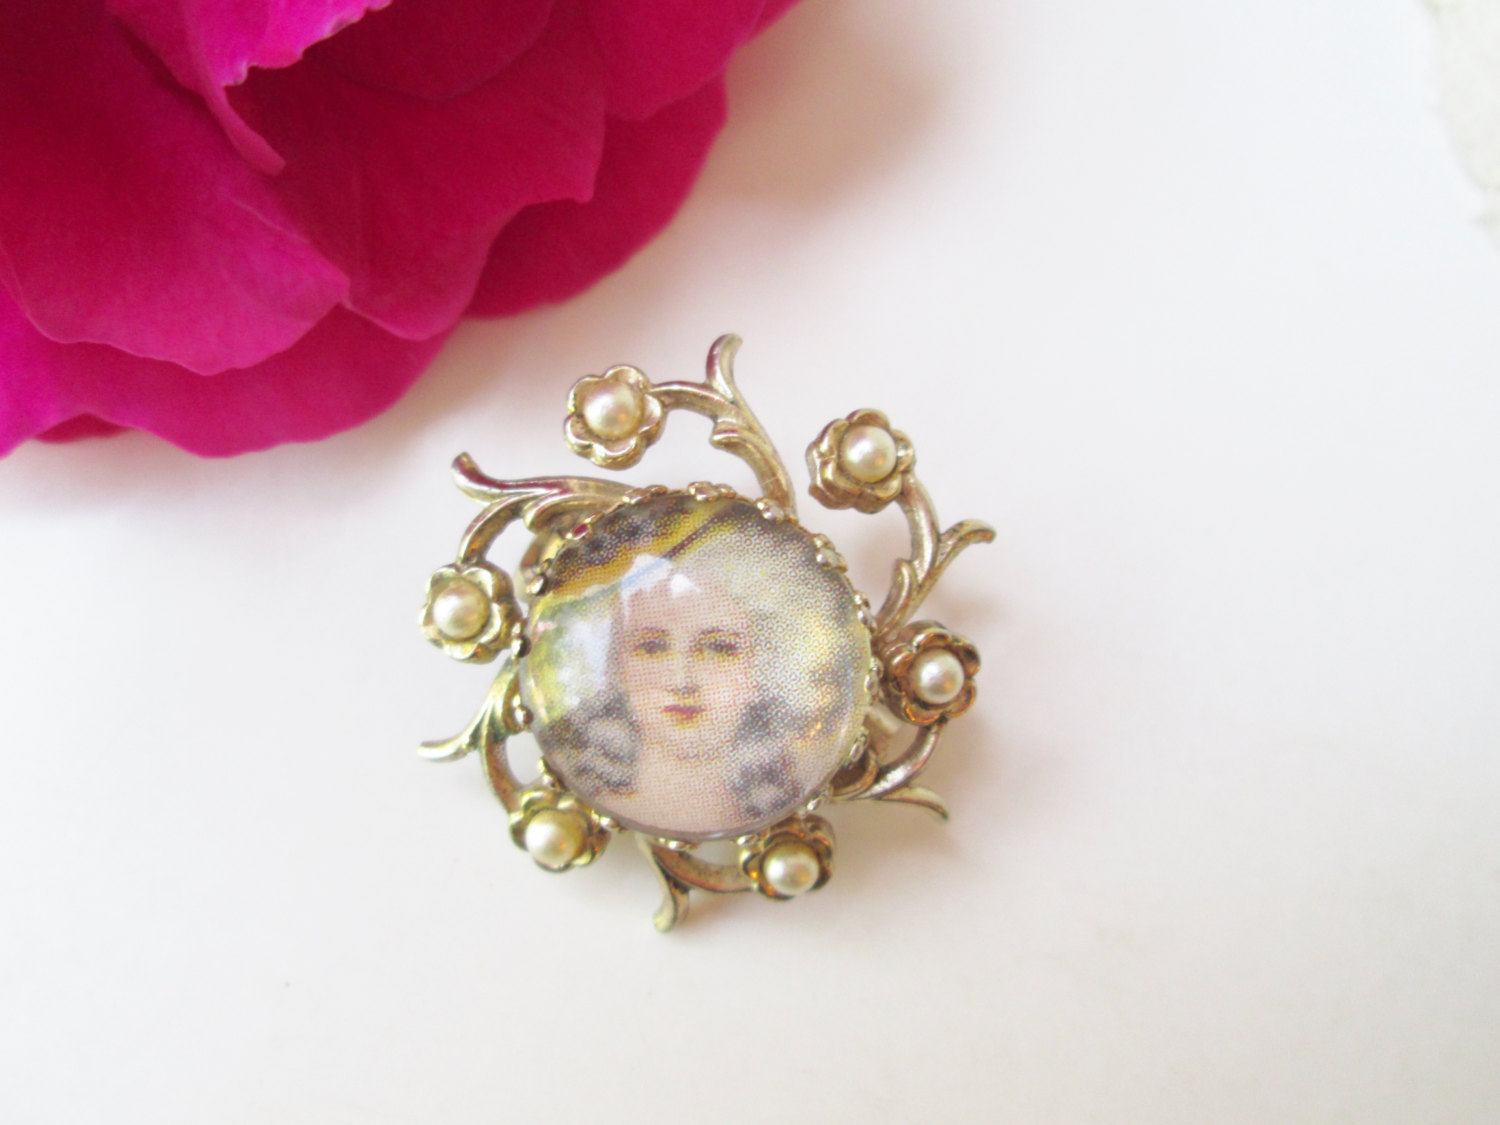 Coro Marie Antoinette Brooch Vintage Cameo Pin Gold w Pearls Dot Style Portrait